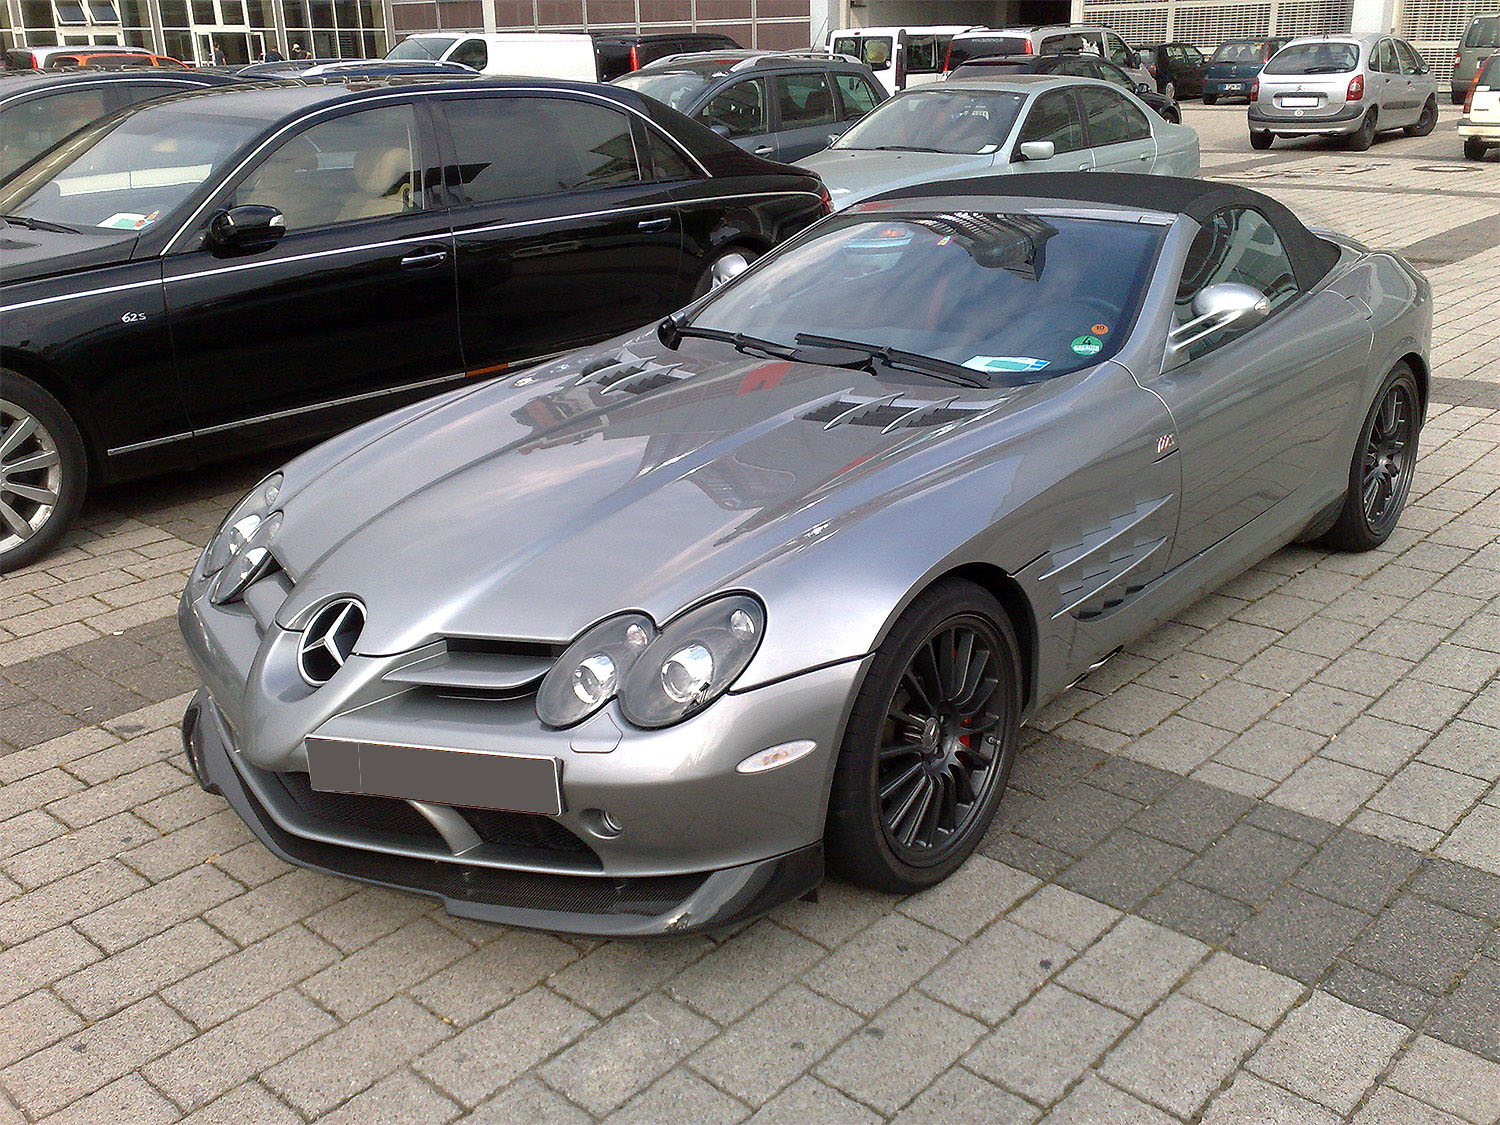 Famous People Cars – Mercedes-Benz SLR McLaren 722 Edition